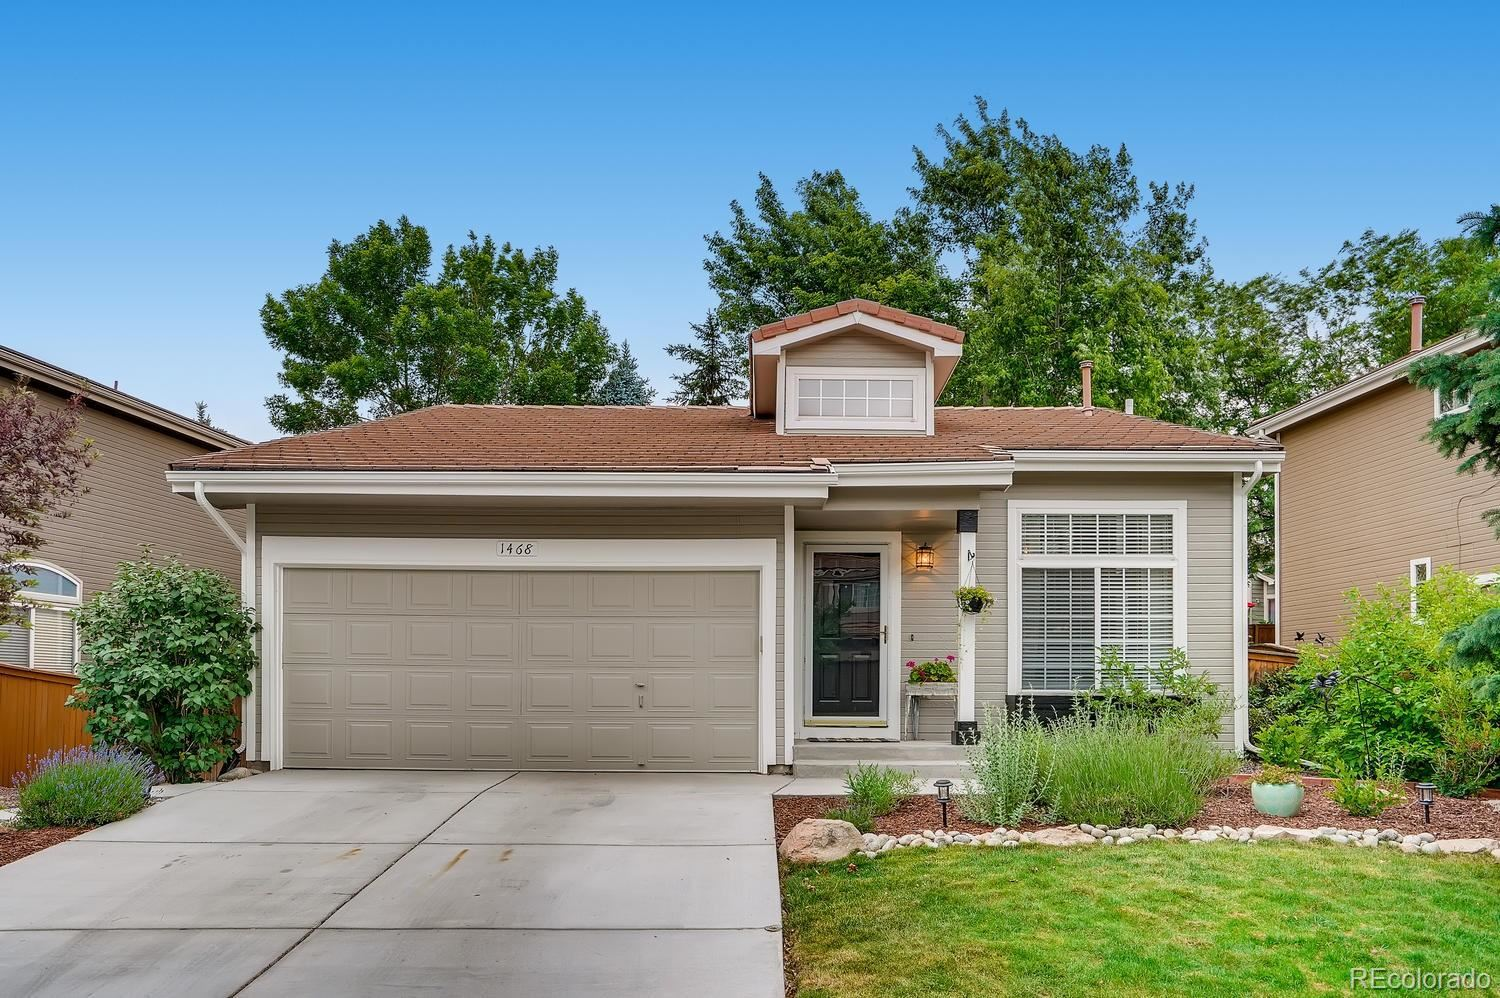 1468 Briarhollow Lane, Highlands Ranch, CO 80129 - #: 6309577